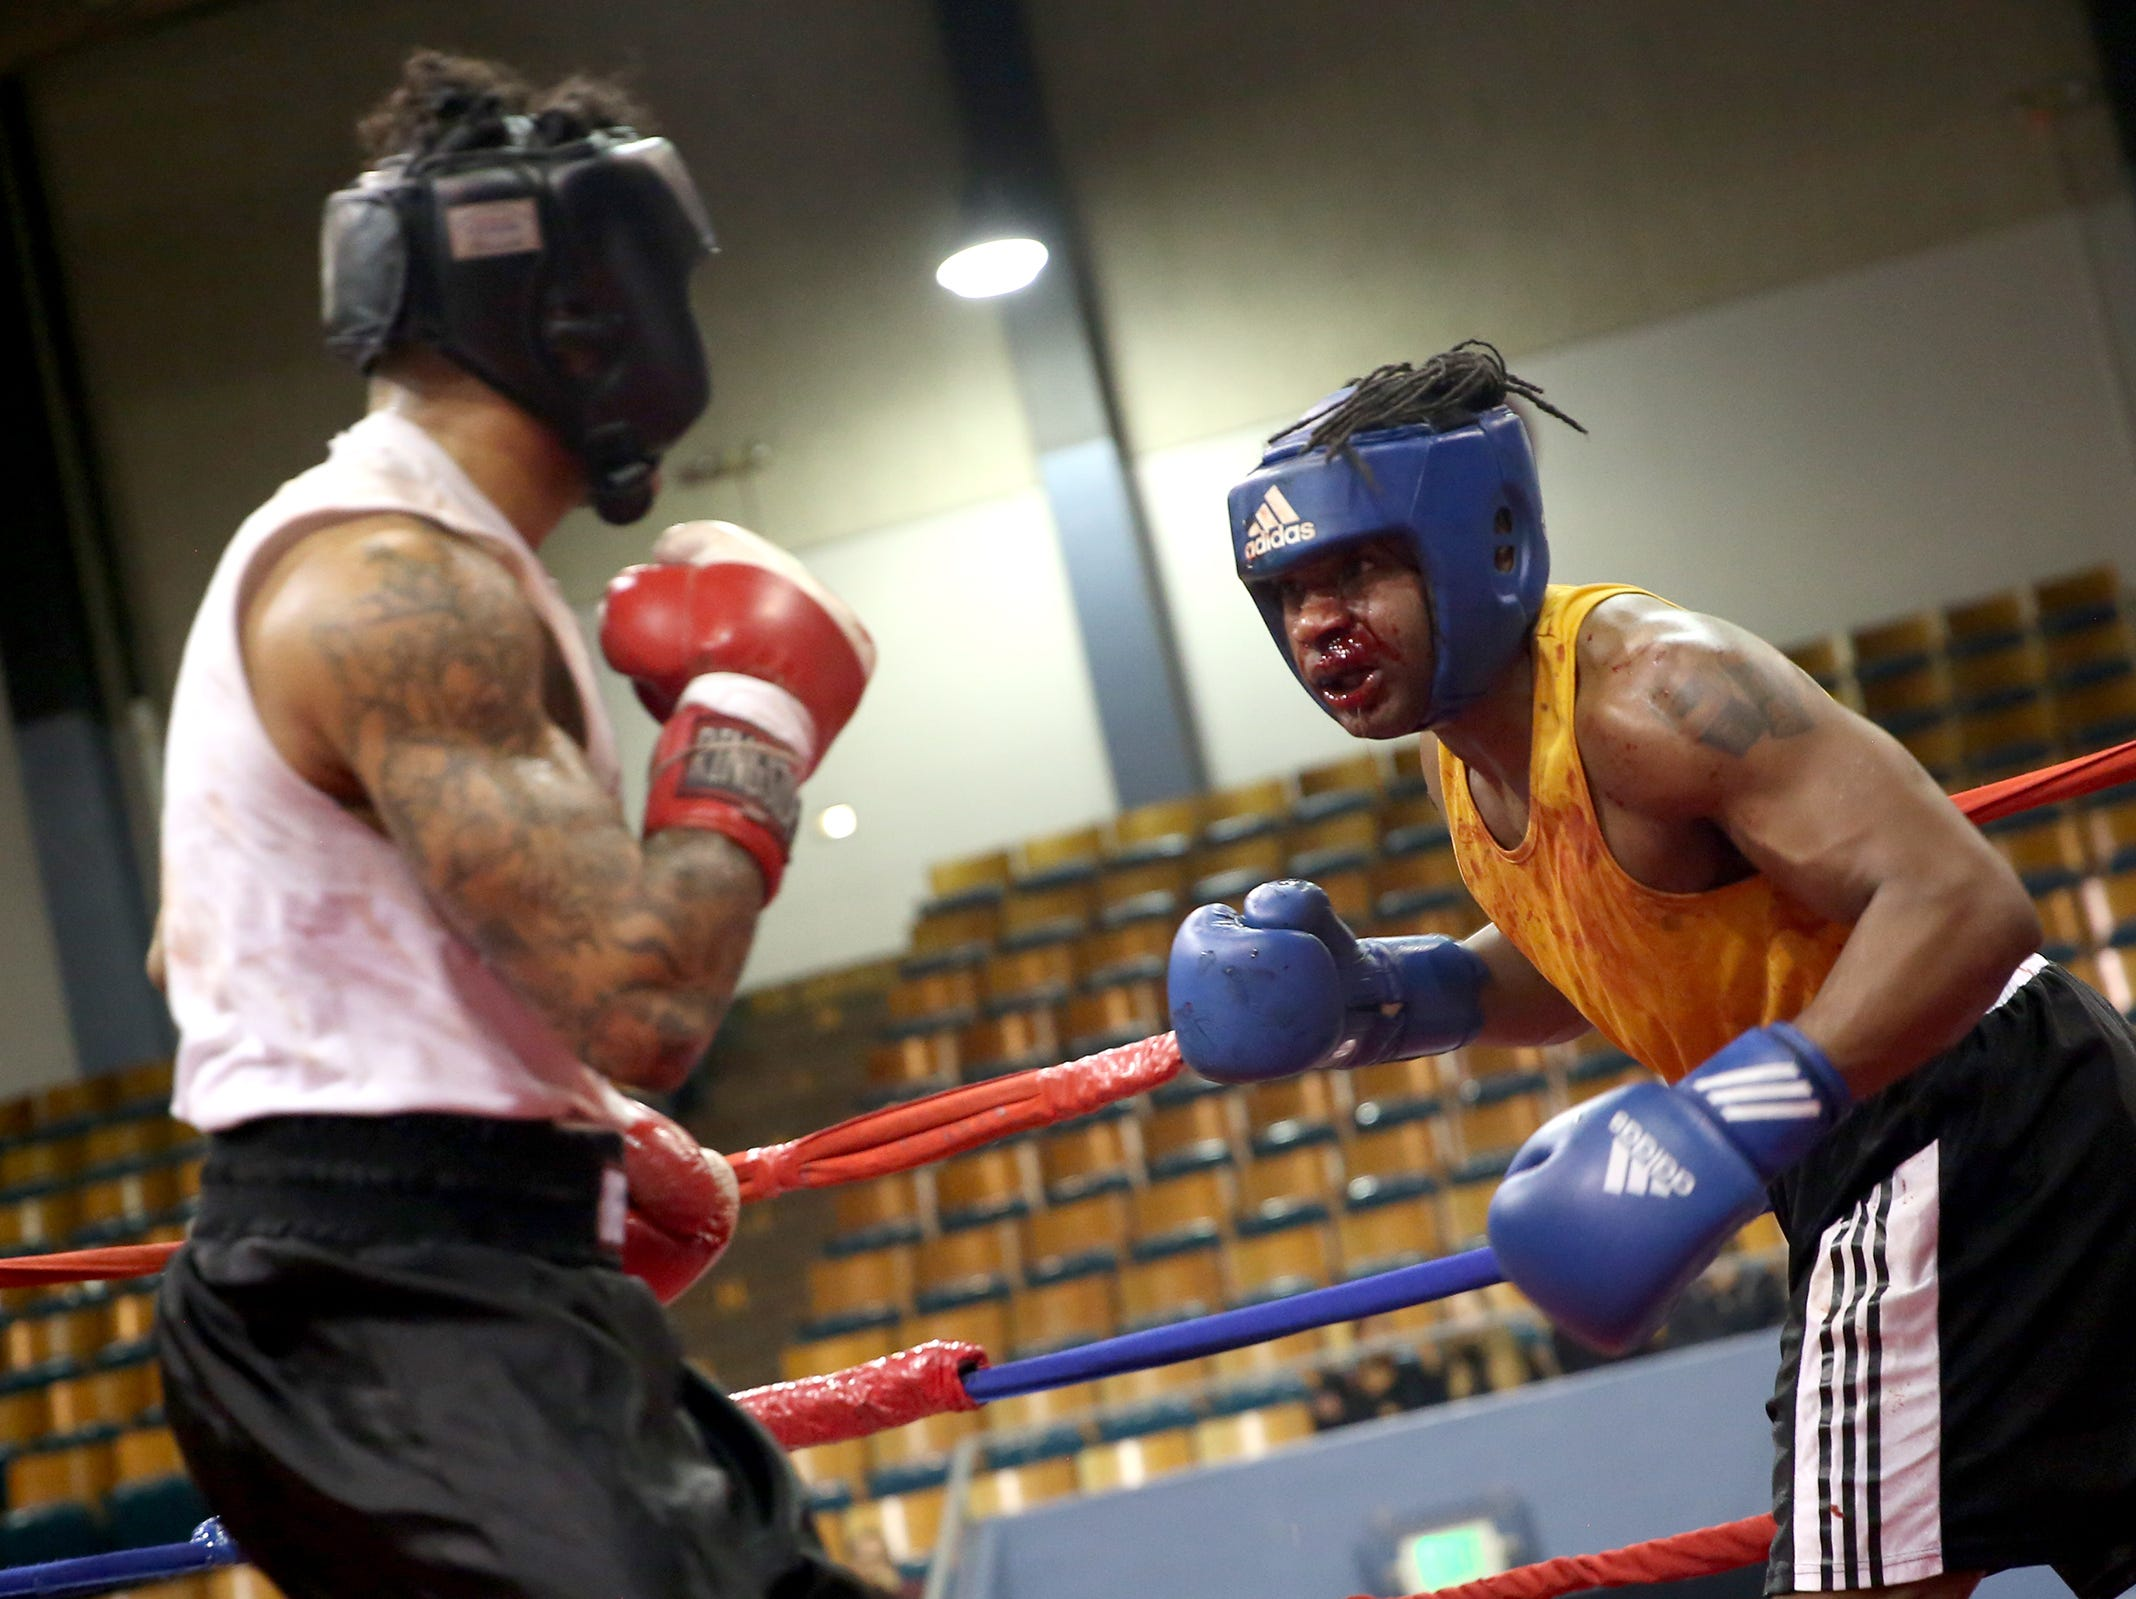 Joseph Aguilar (left) of Happy Valley takes on Terance Oddie of Vancouver (right) at the Oregon Golden Gloves championship matches at the Salem Armory on Saturday, Feb. 2, 2019.